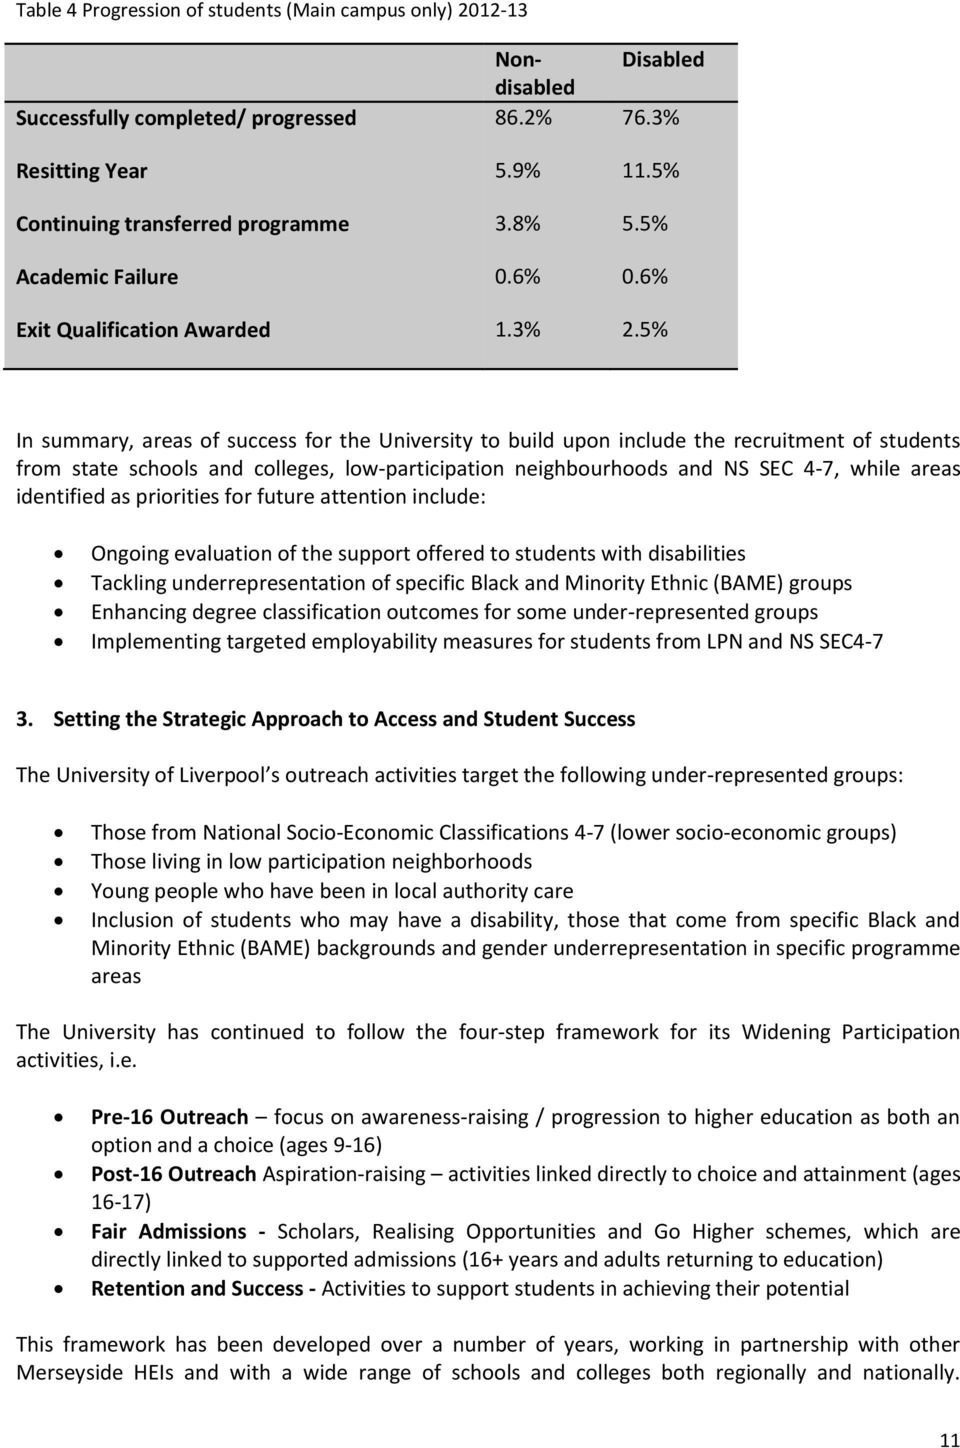 5% In summary, areas of success for the University to build upon include the recruitment of students from state schools and colleges, low-participation neighbourhoods and NS SEC 4-7, while areas